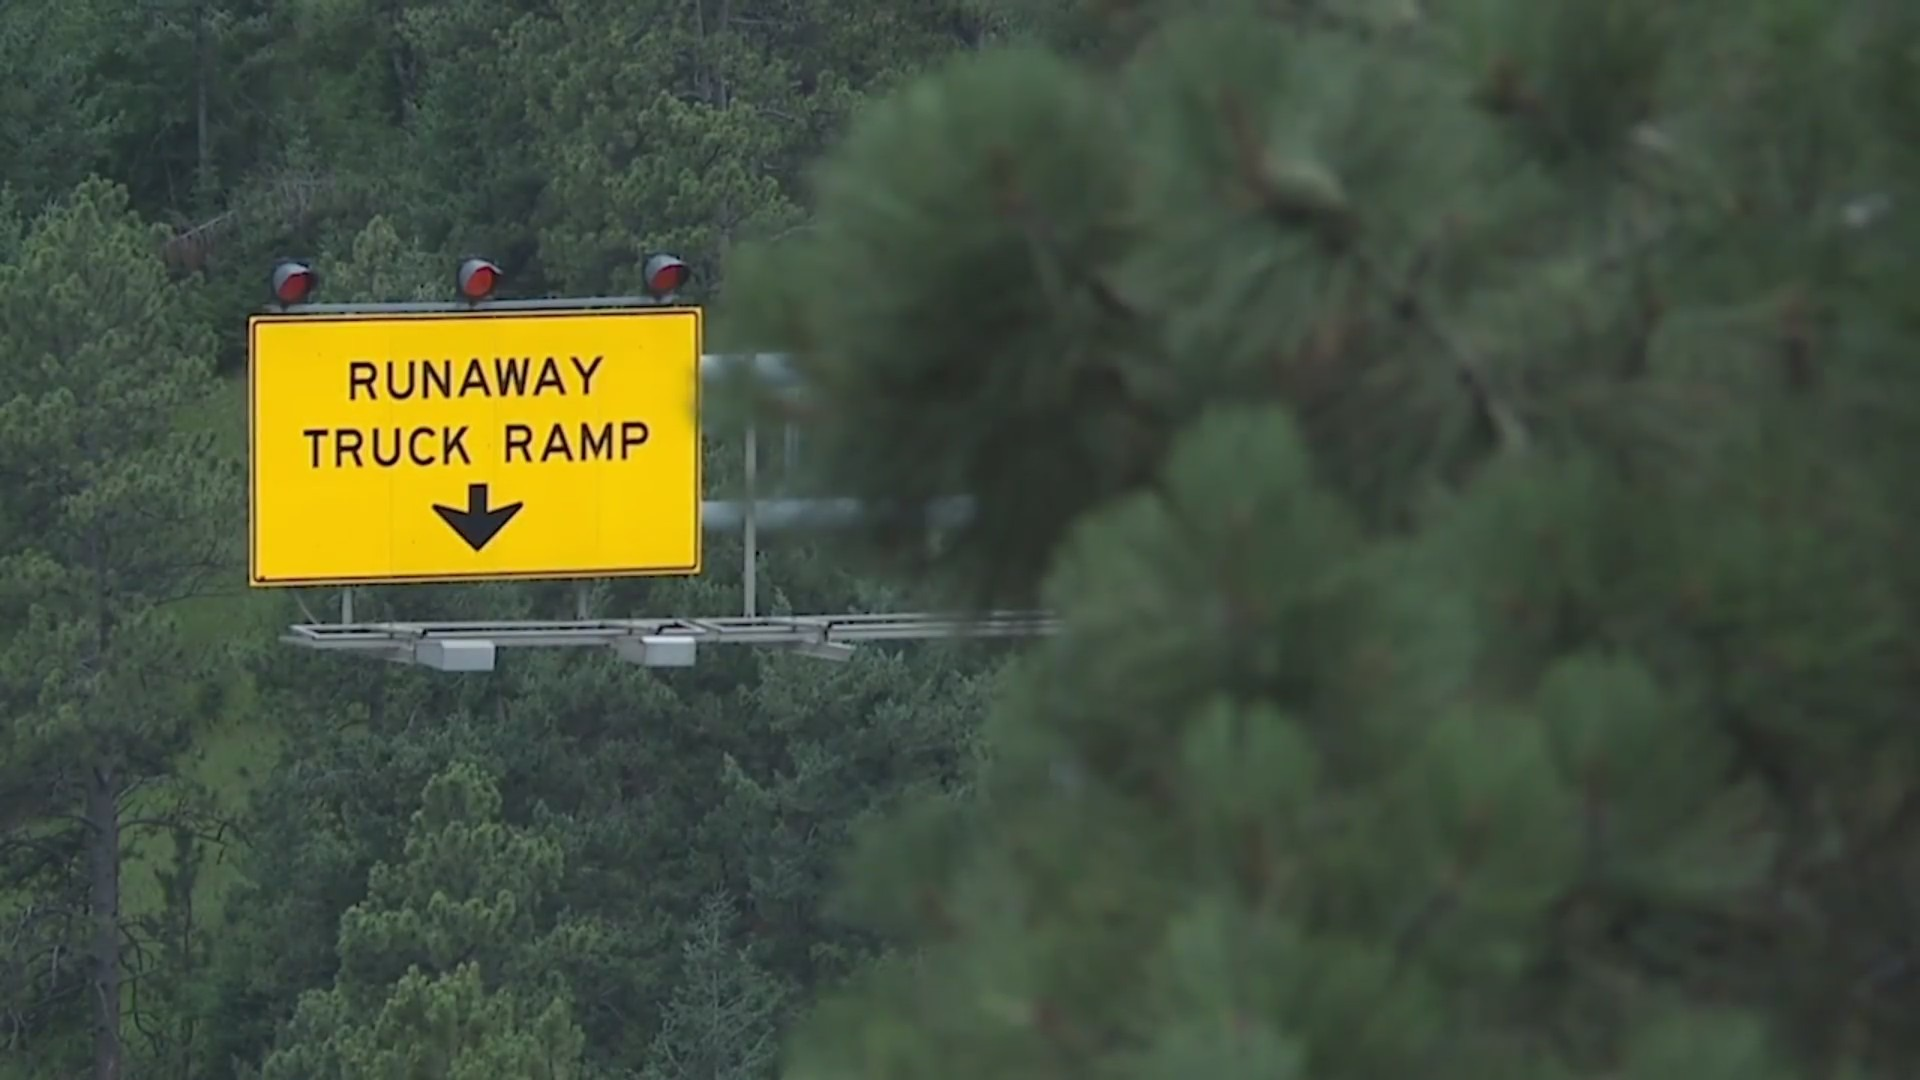 "A yellow road sign that says ""RUNAWAY TRUCK RAMP"" with an arrow pointing down"